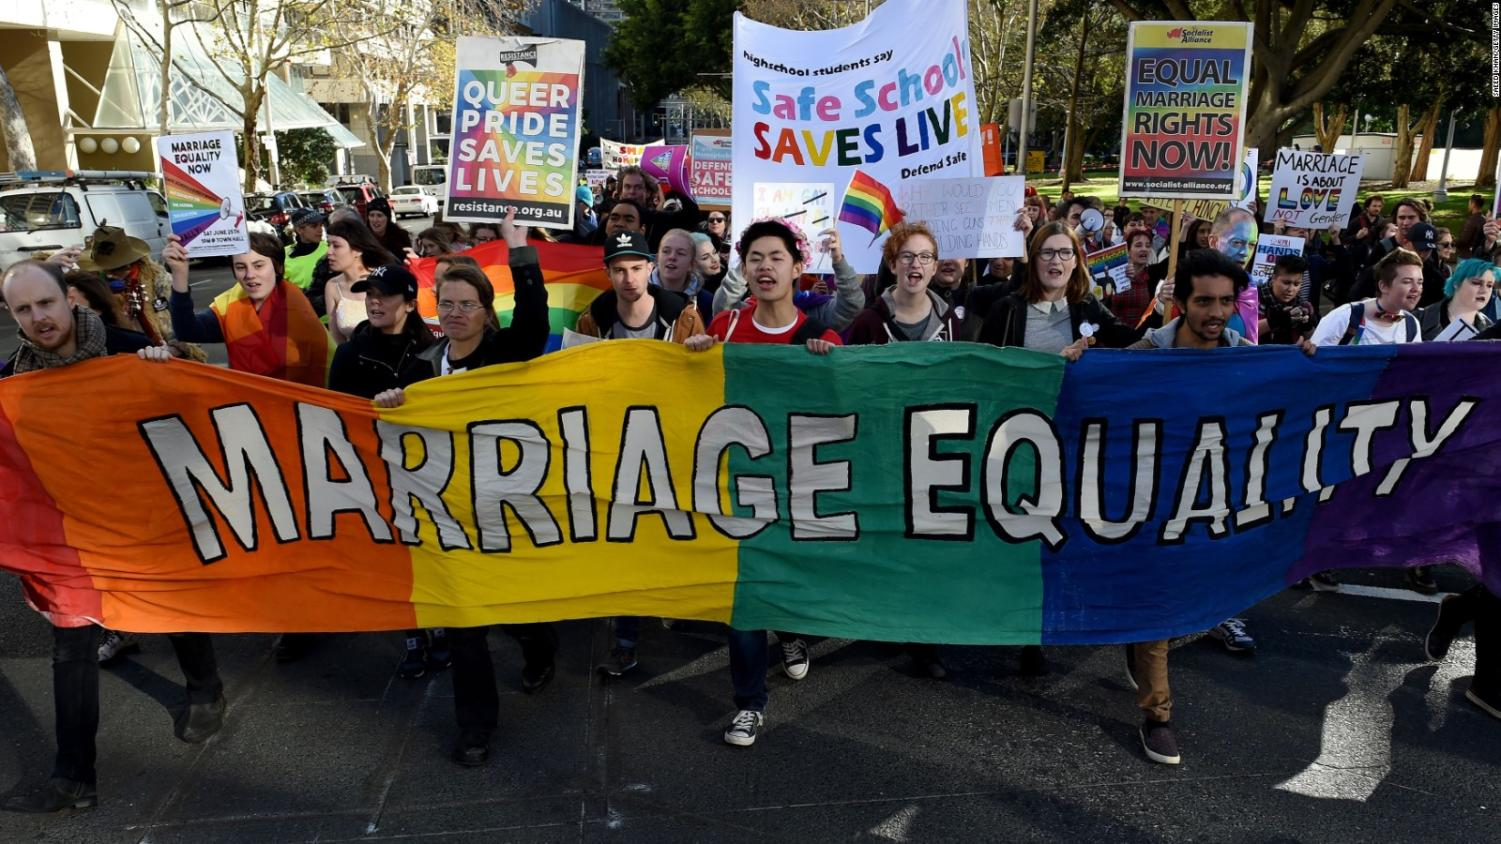 Australia marching for gay marriage rights. Photo by CNN